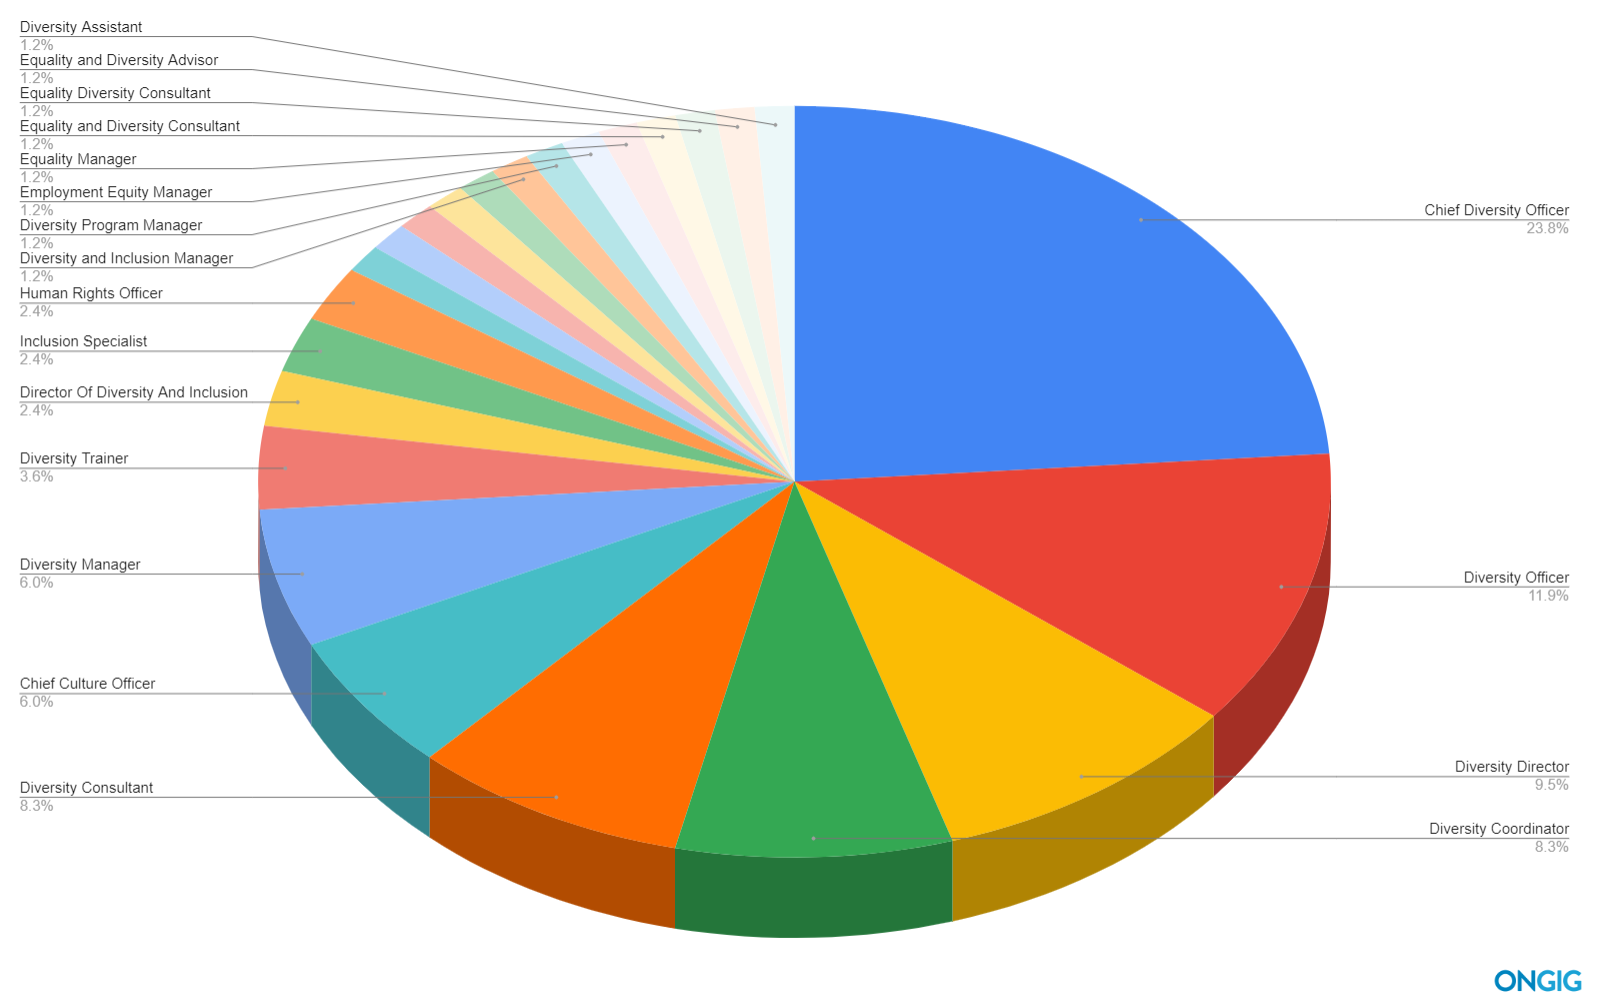 top diversity titles pie chart